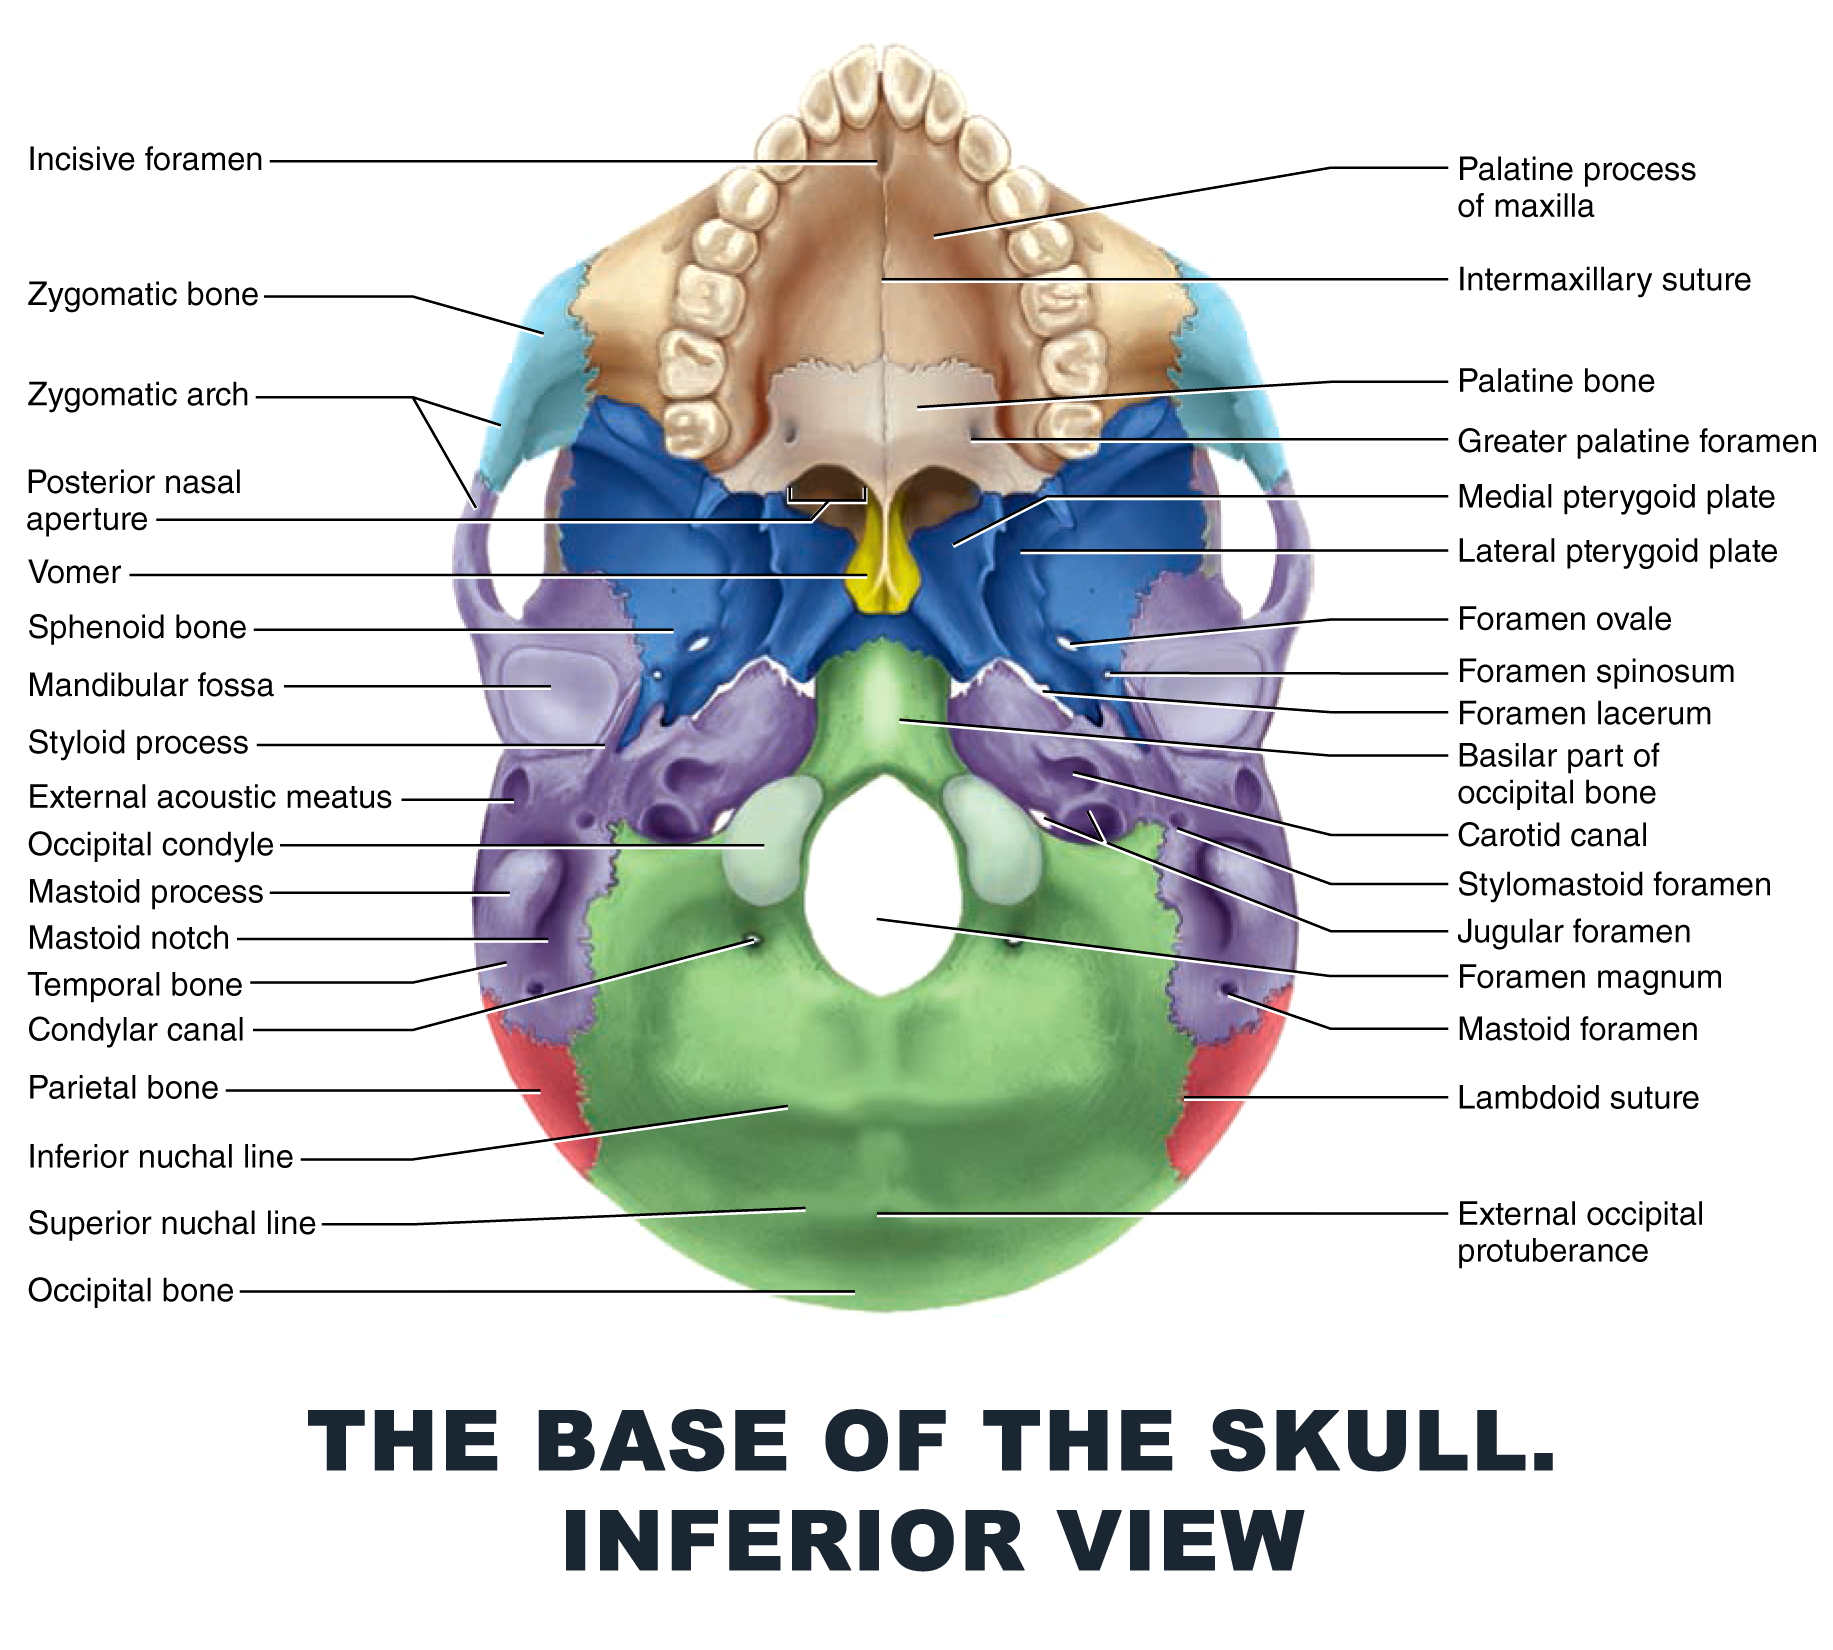 The Base Of The Skull Inferior View